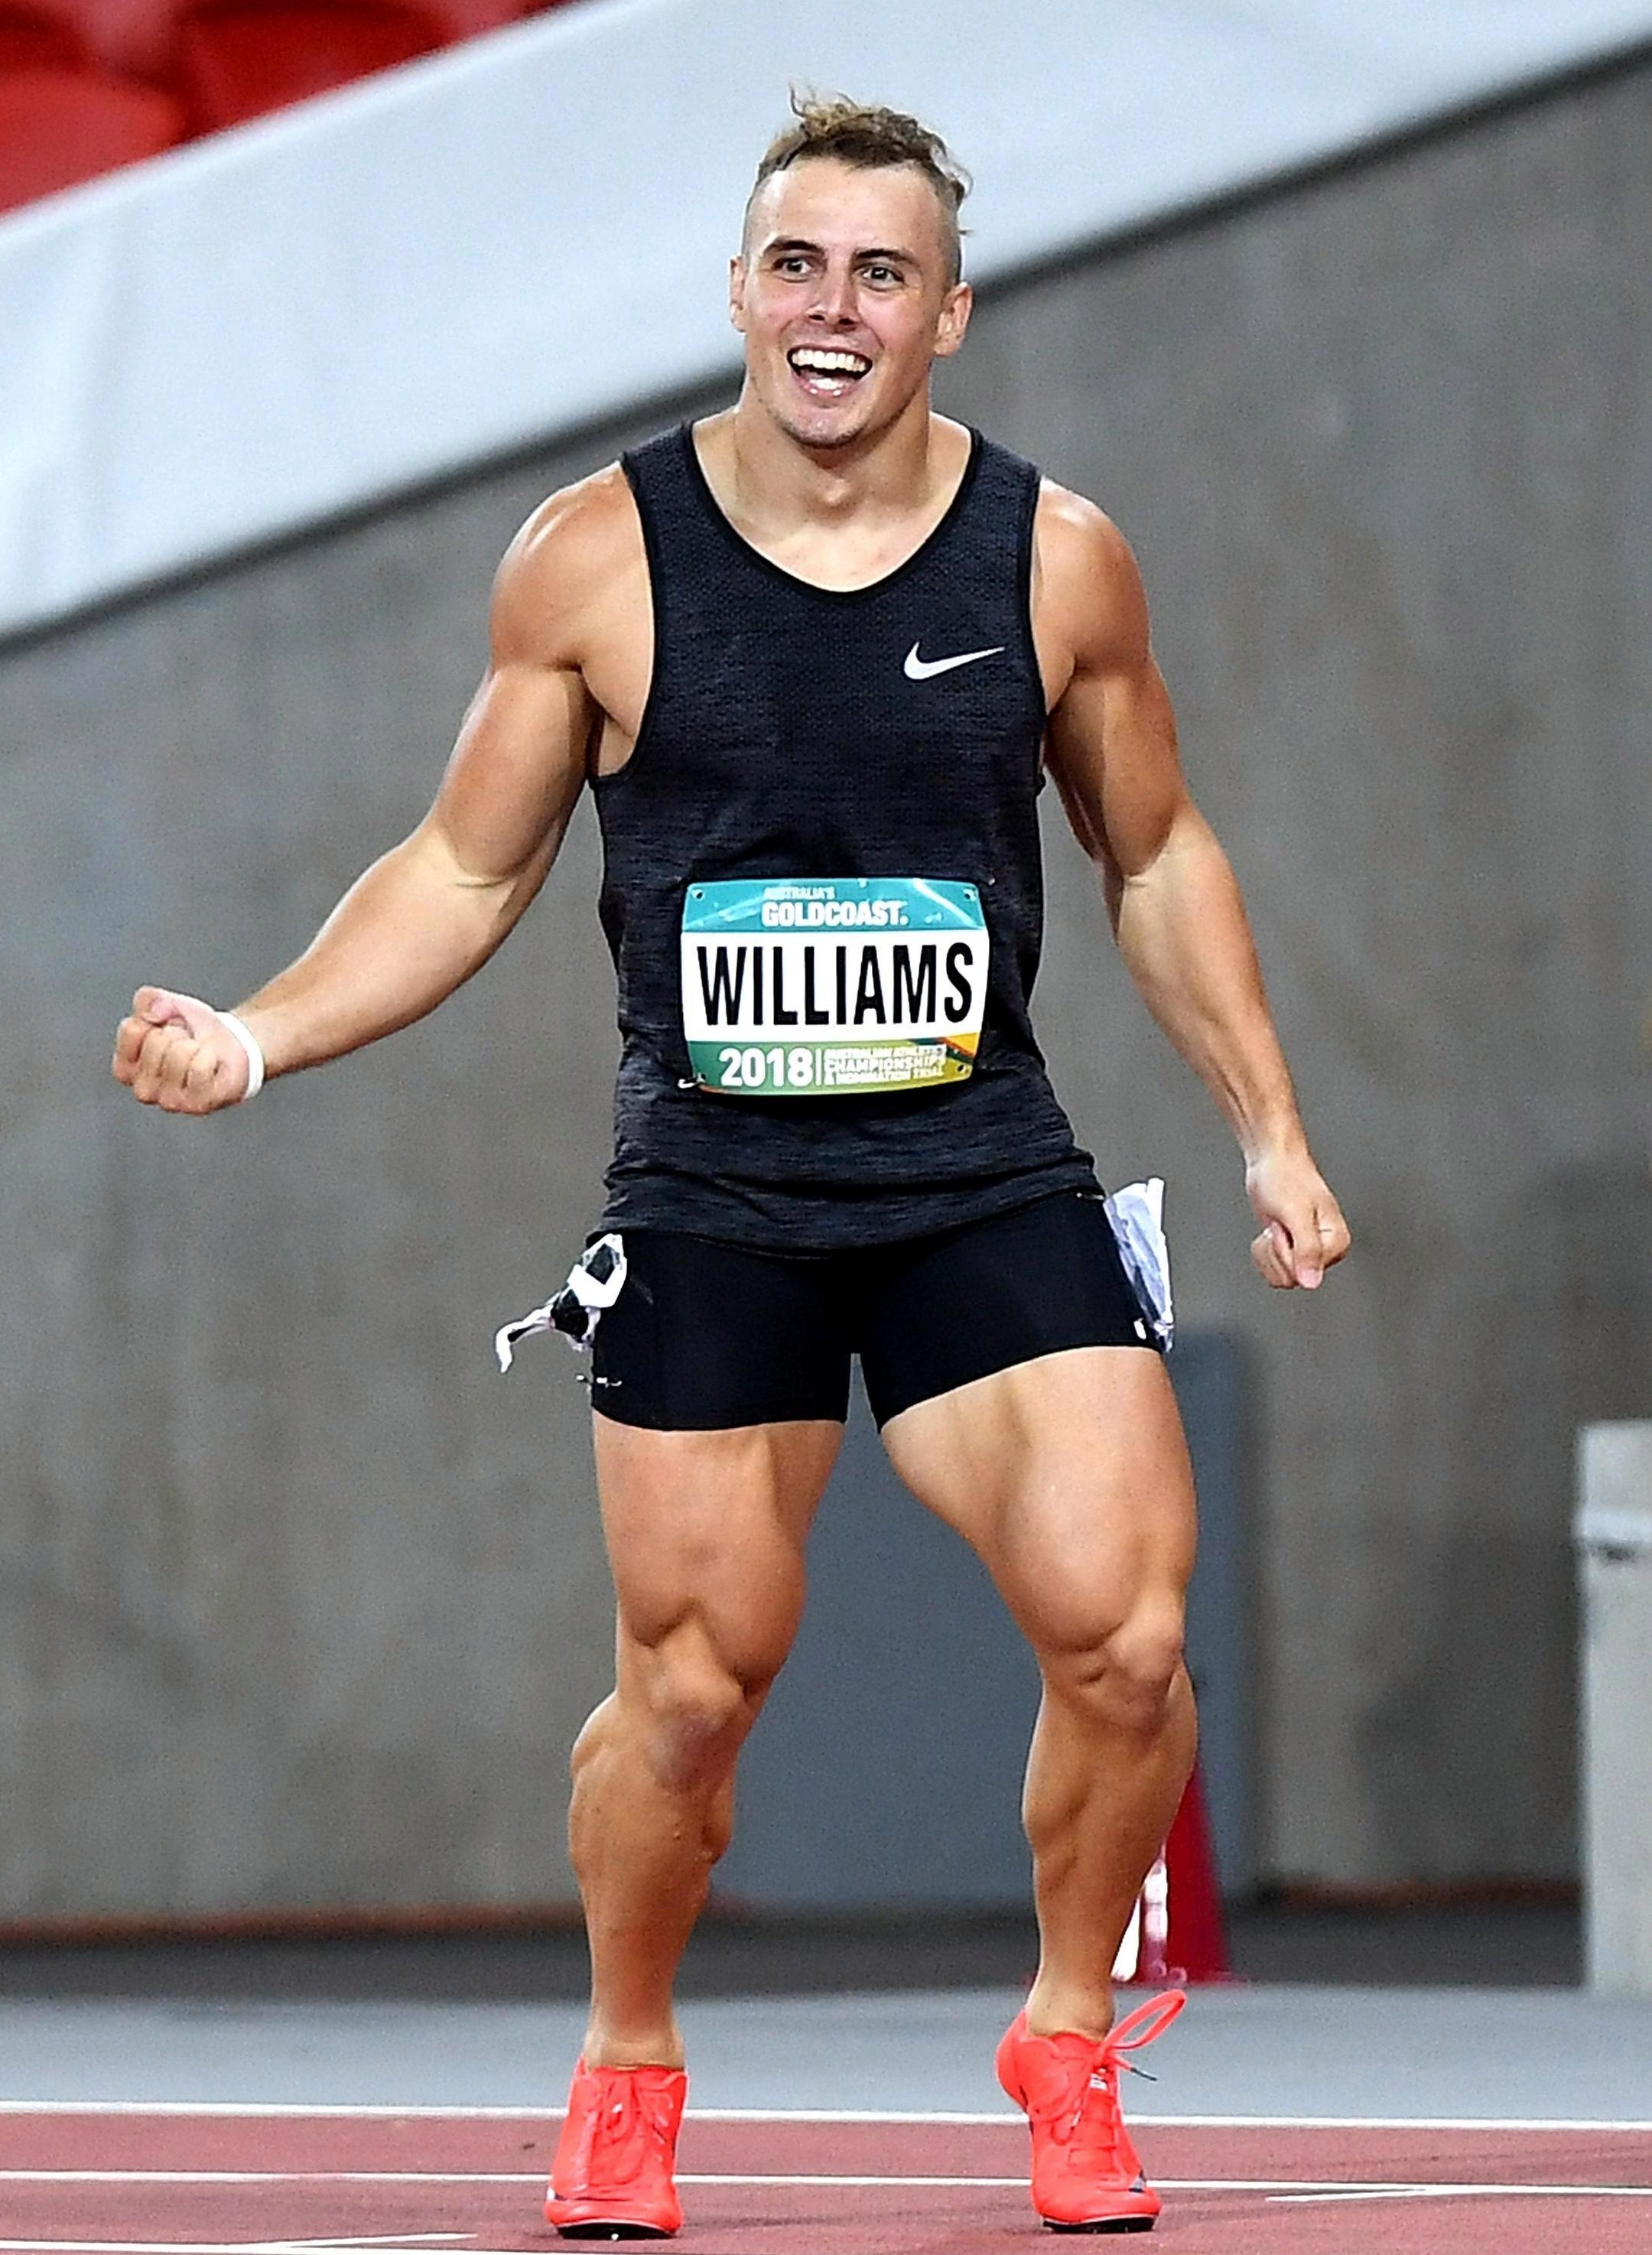 Trae Williams' quads have caught the attention of athletics fans after he blasted his way to victory in the Australian Commonwealth trials